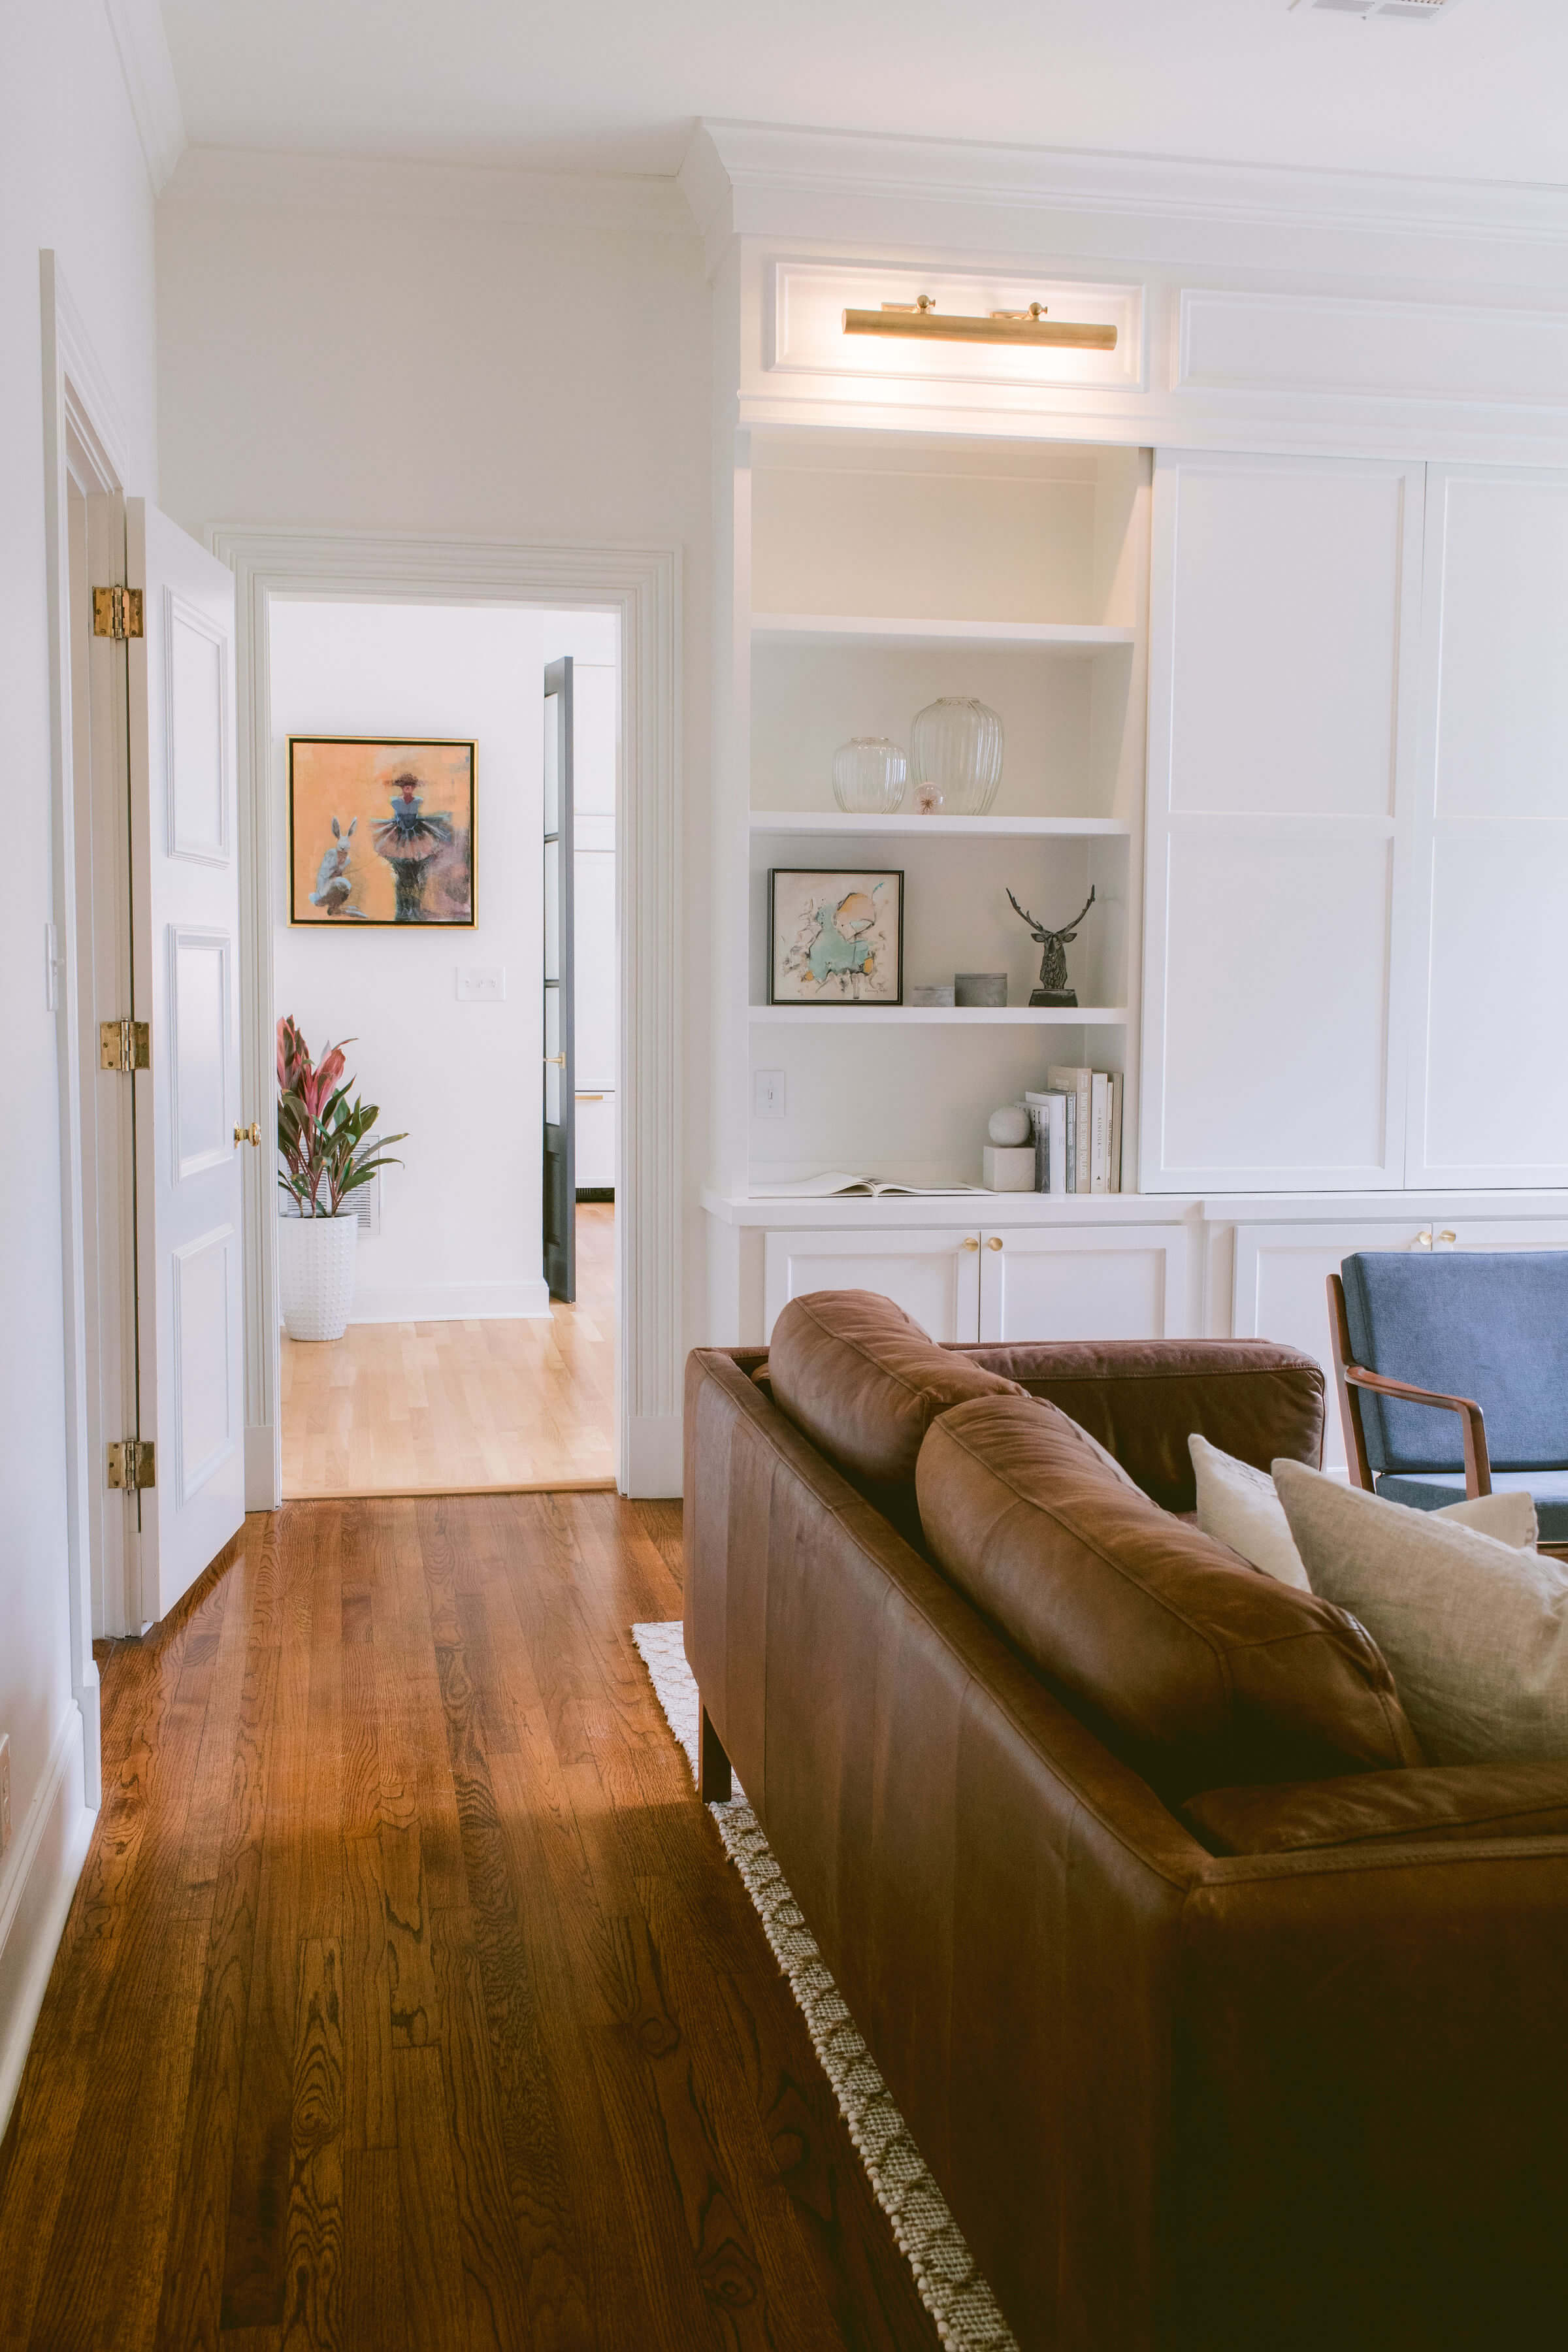 NW-Interiors_Photo-by-Andrew-Welch.jpg